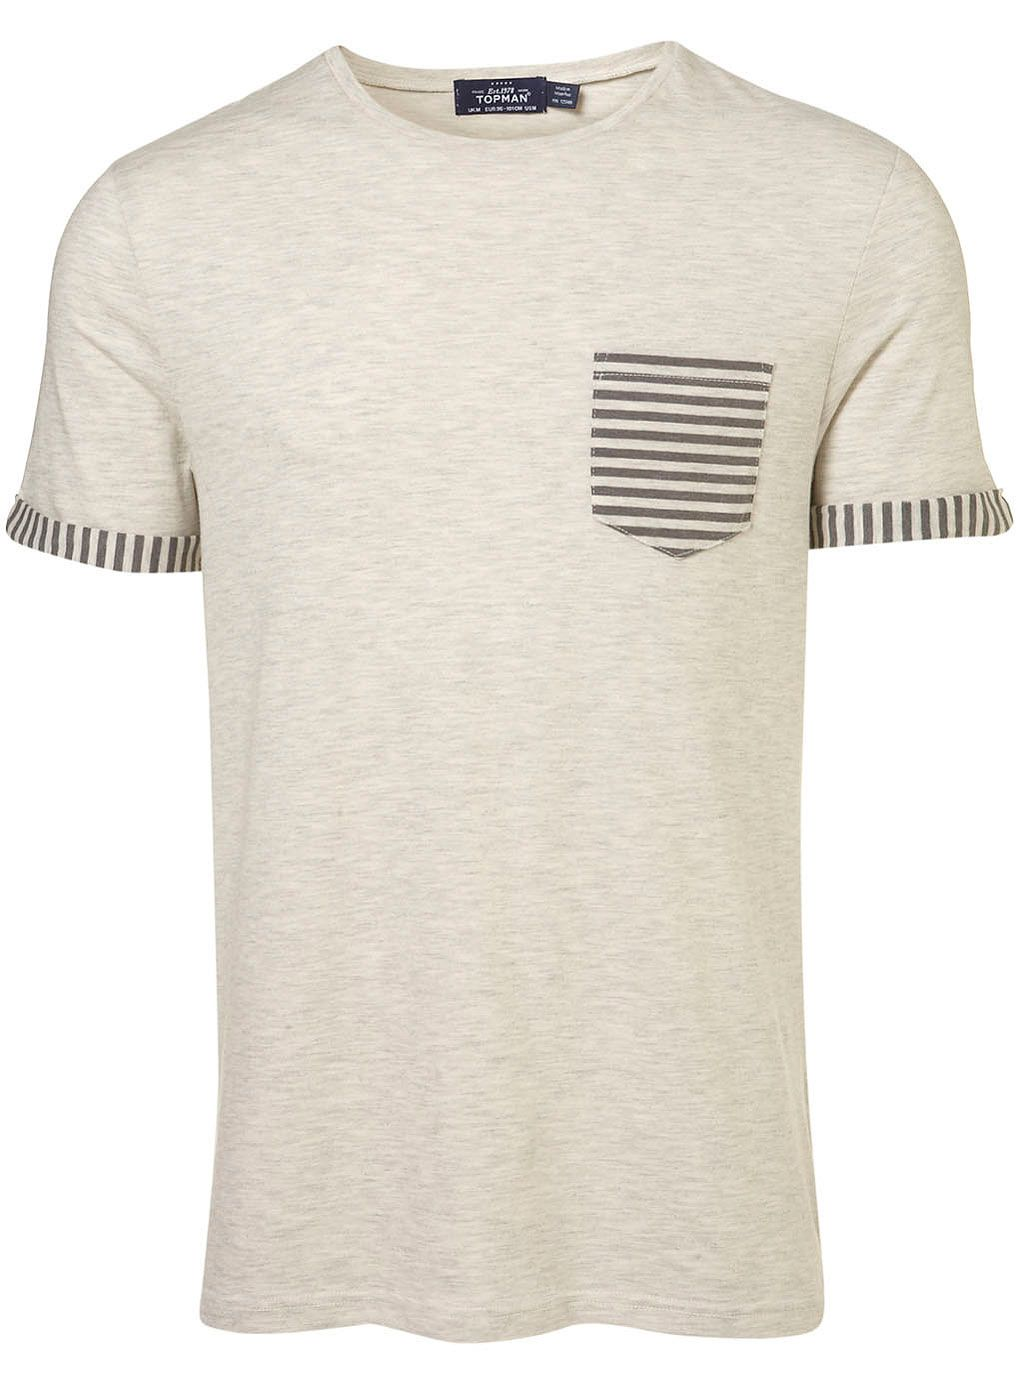 White T-shirt - Topman  24.00€